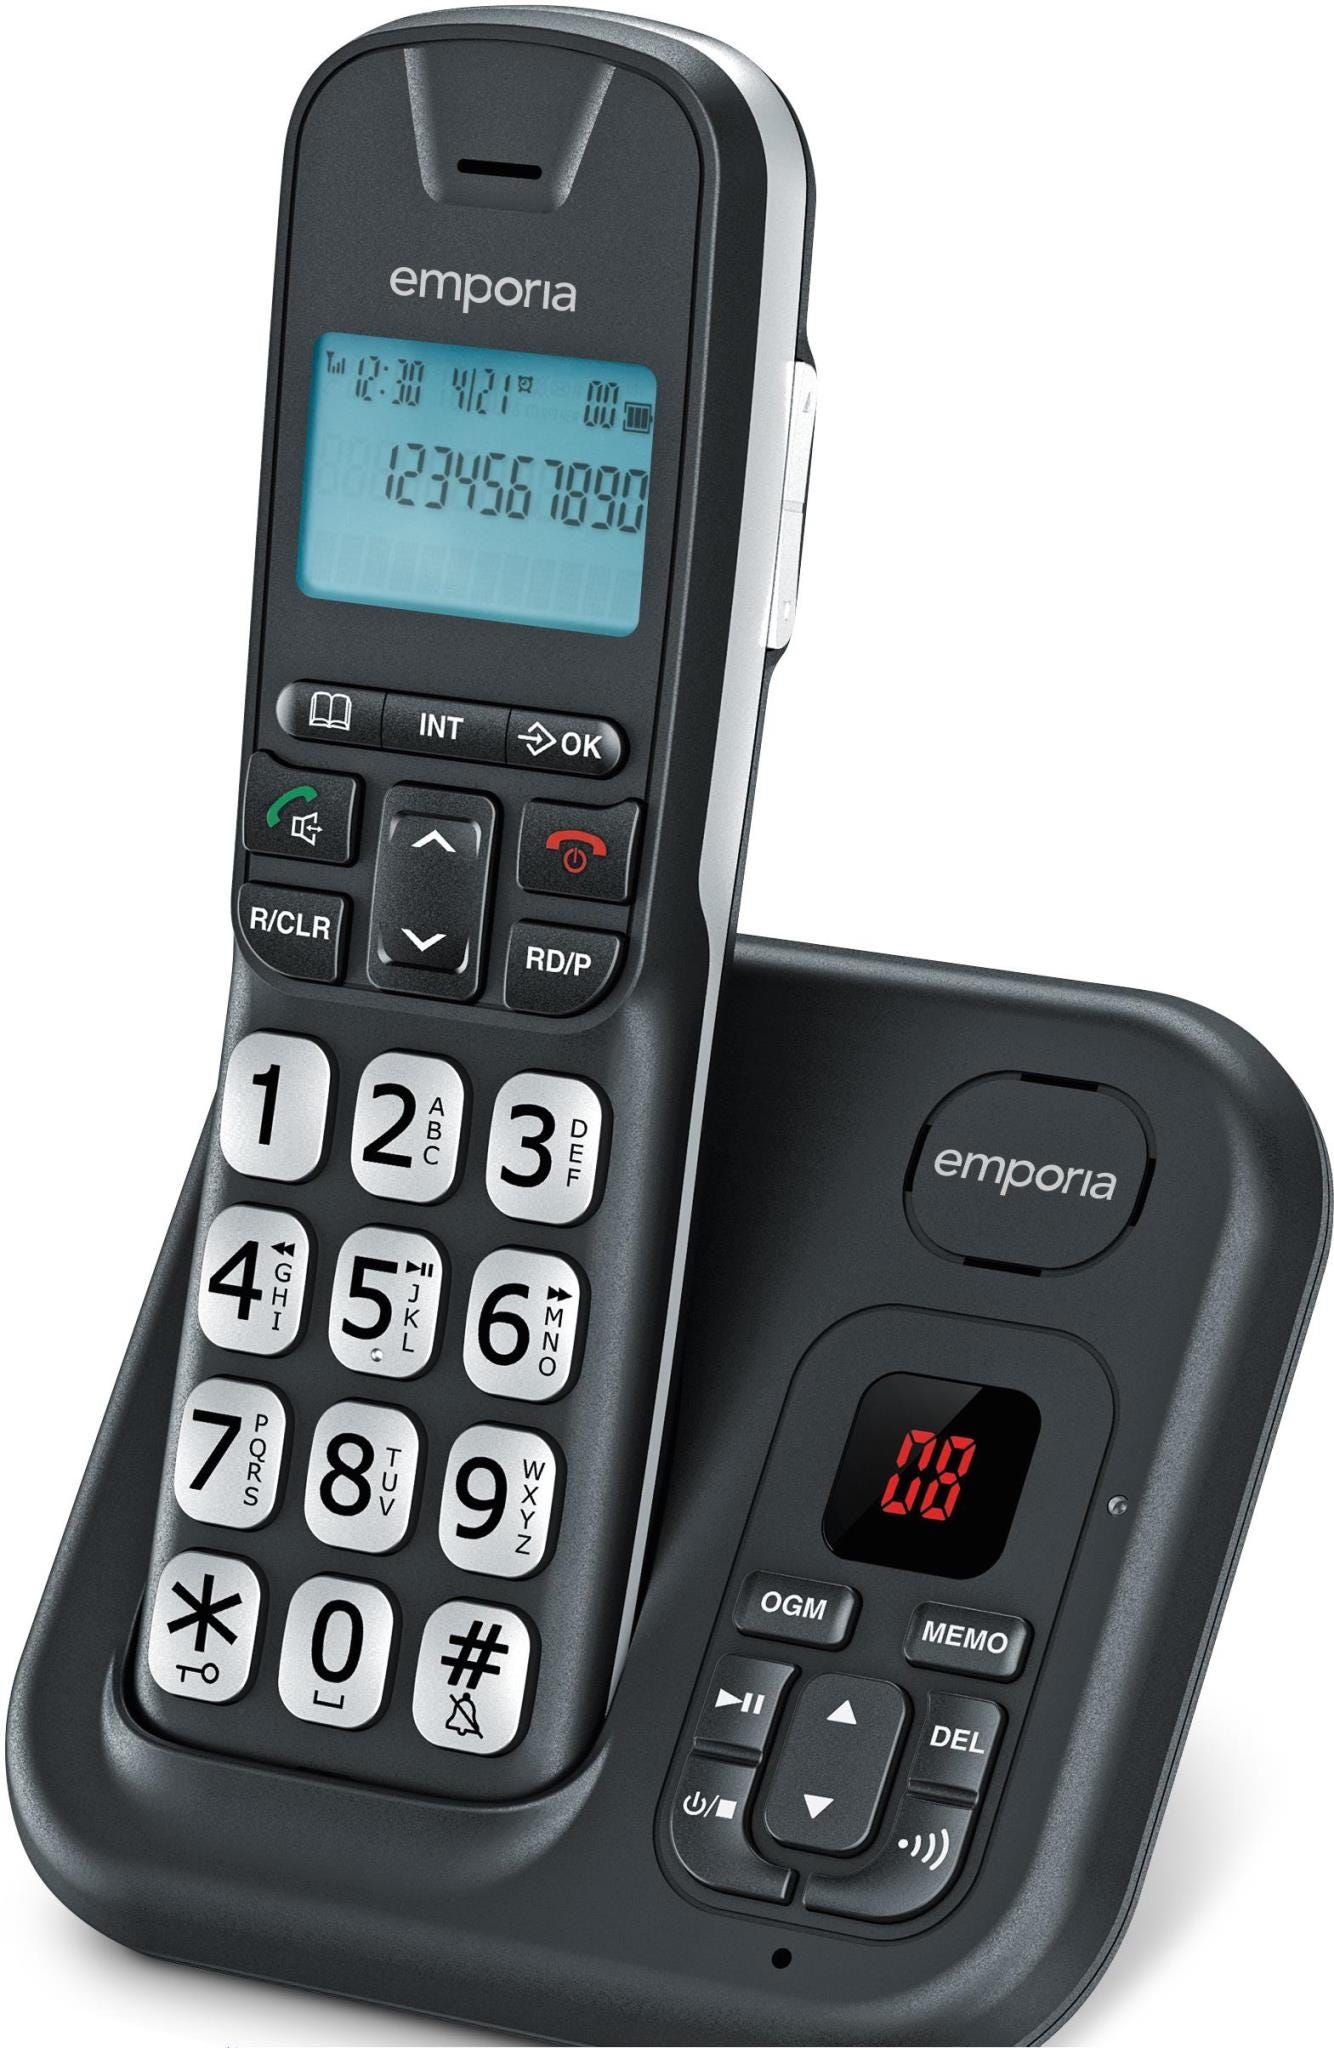 Image of Emporia GD-61-AB Cordless Big Button DECT Phone with Digital Answering Machine